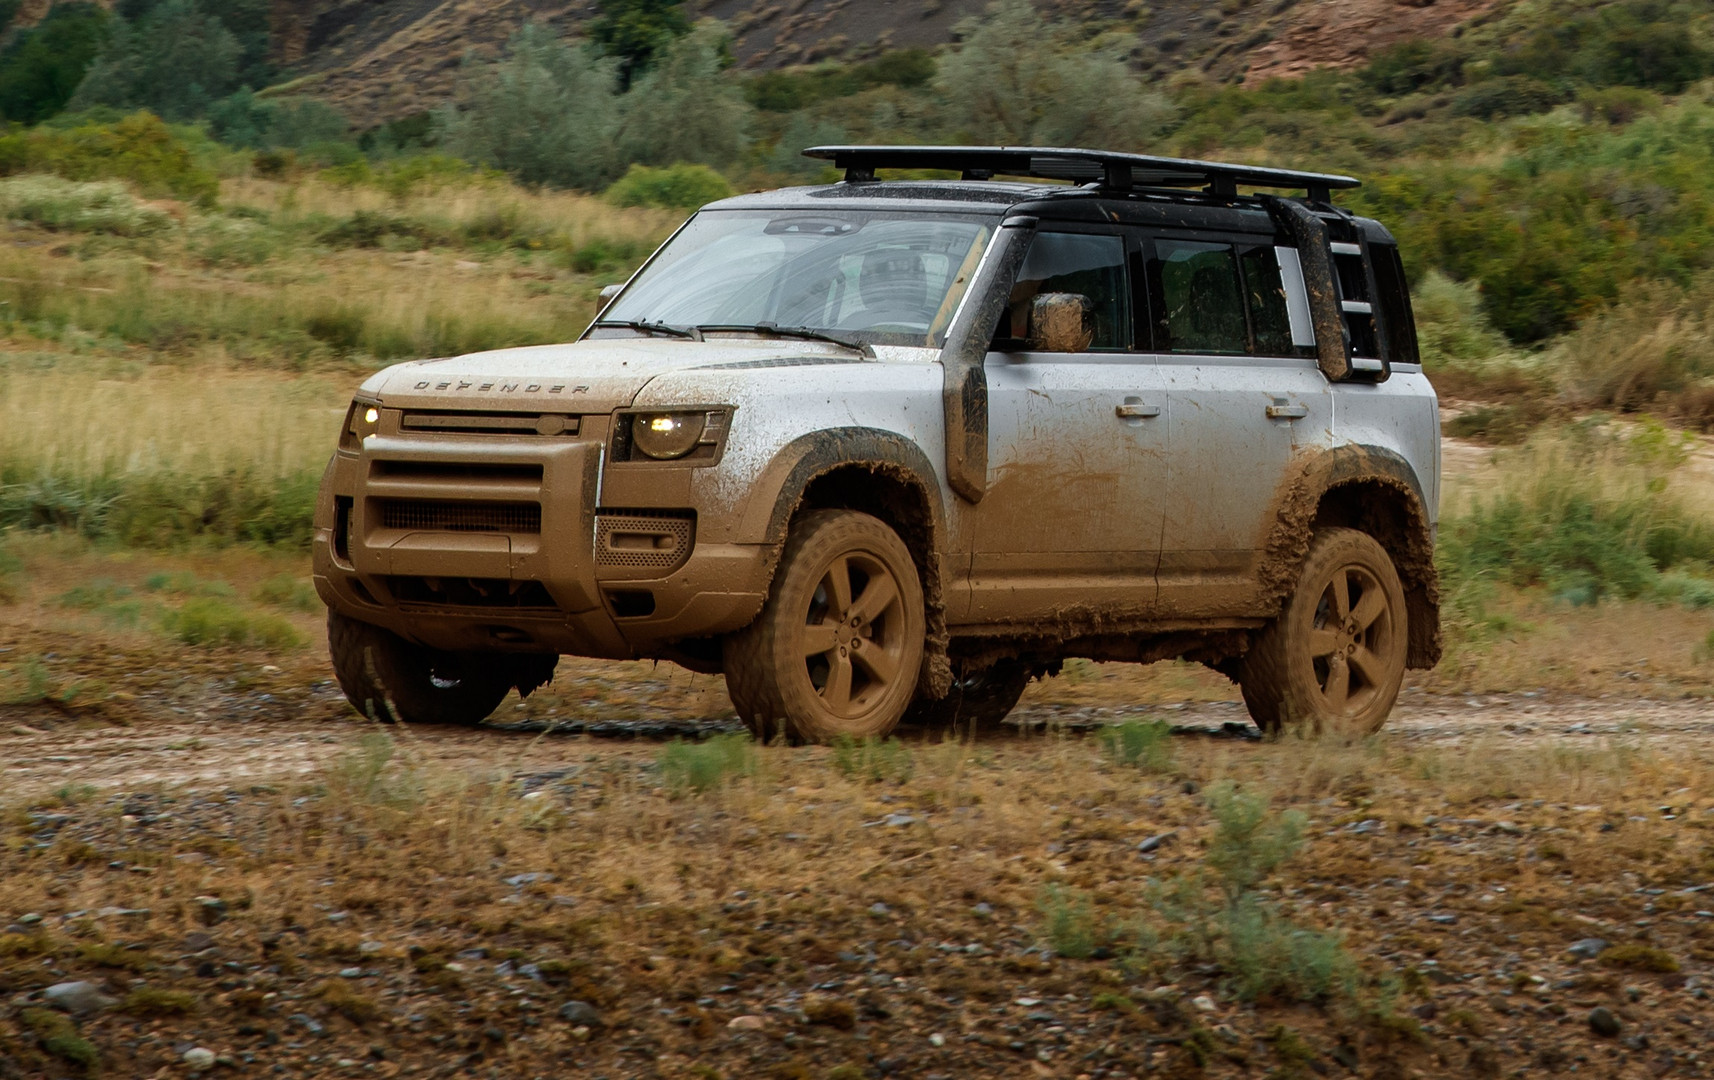 2020 Land Rover Defender Price And Specs